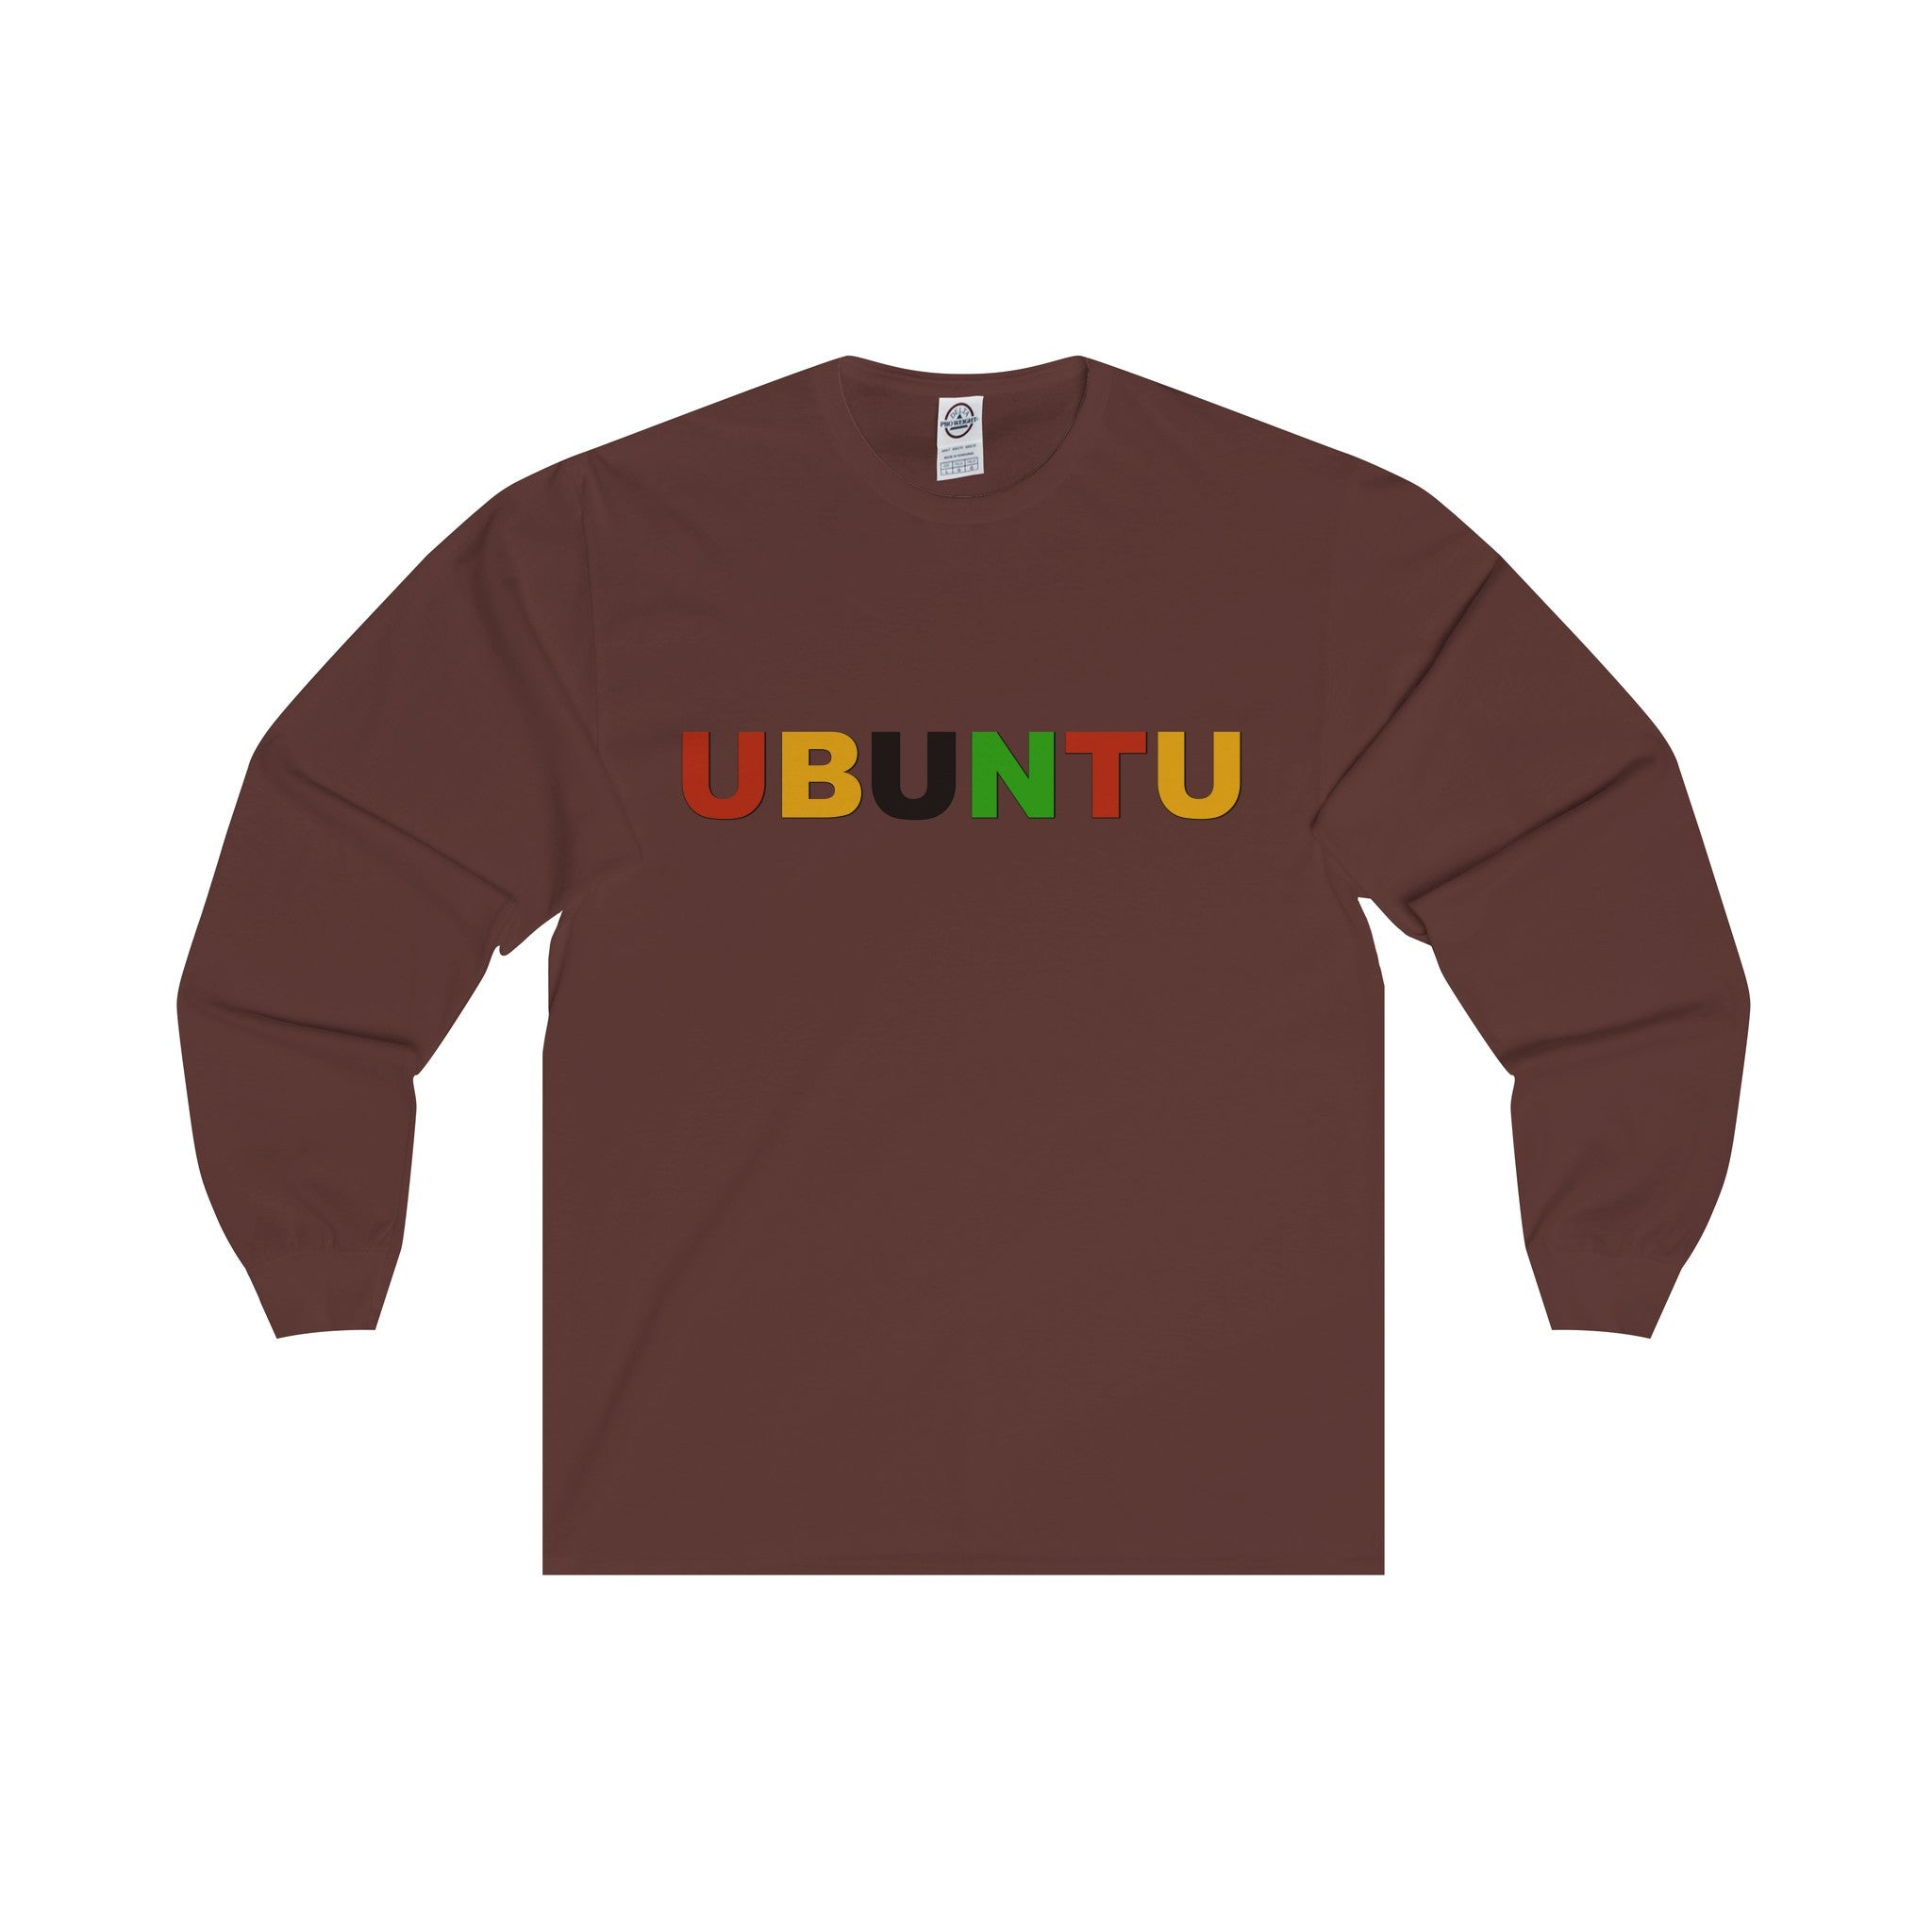 Ubuntu Multi-color Letter Long Sleeve Tee (7 colors available)